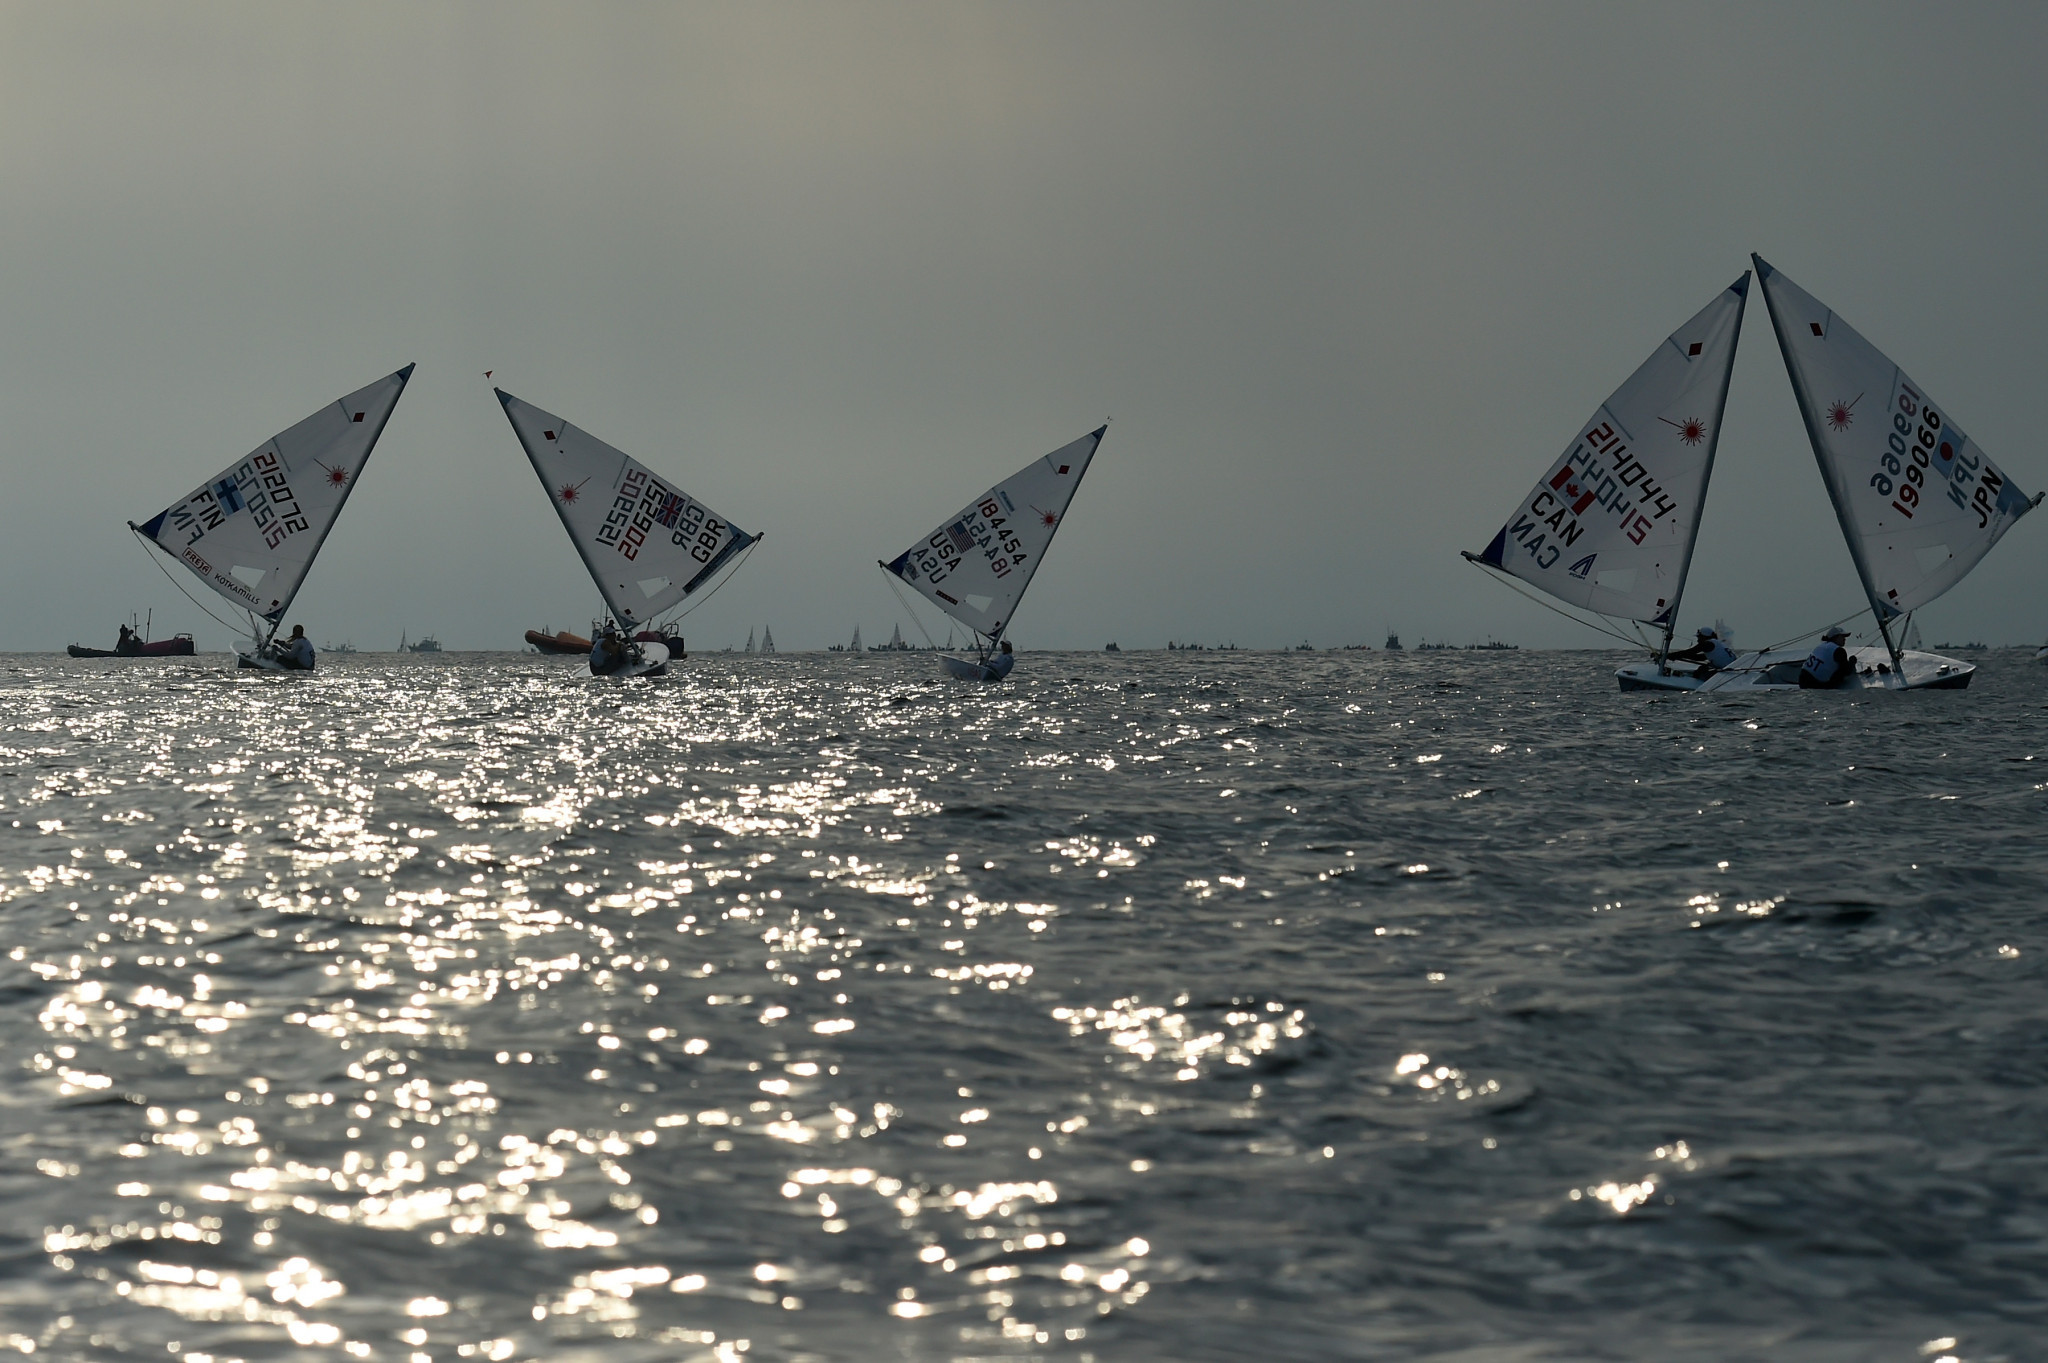 Racing at Laser Standard Men's World Championships postponed due to strong winds